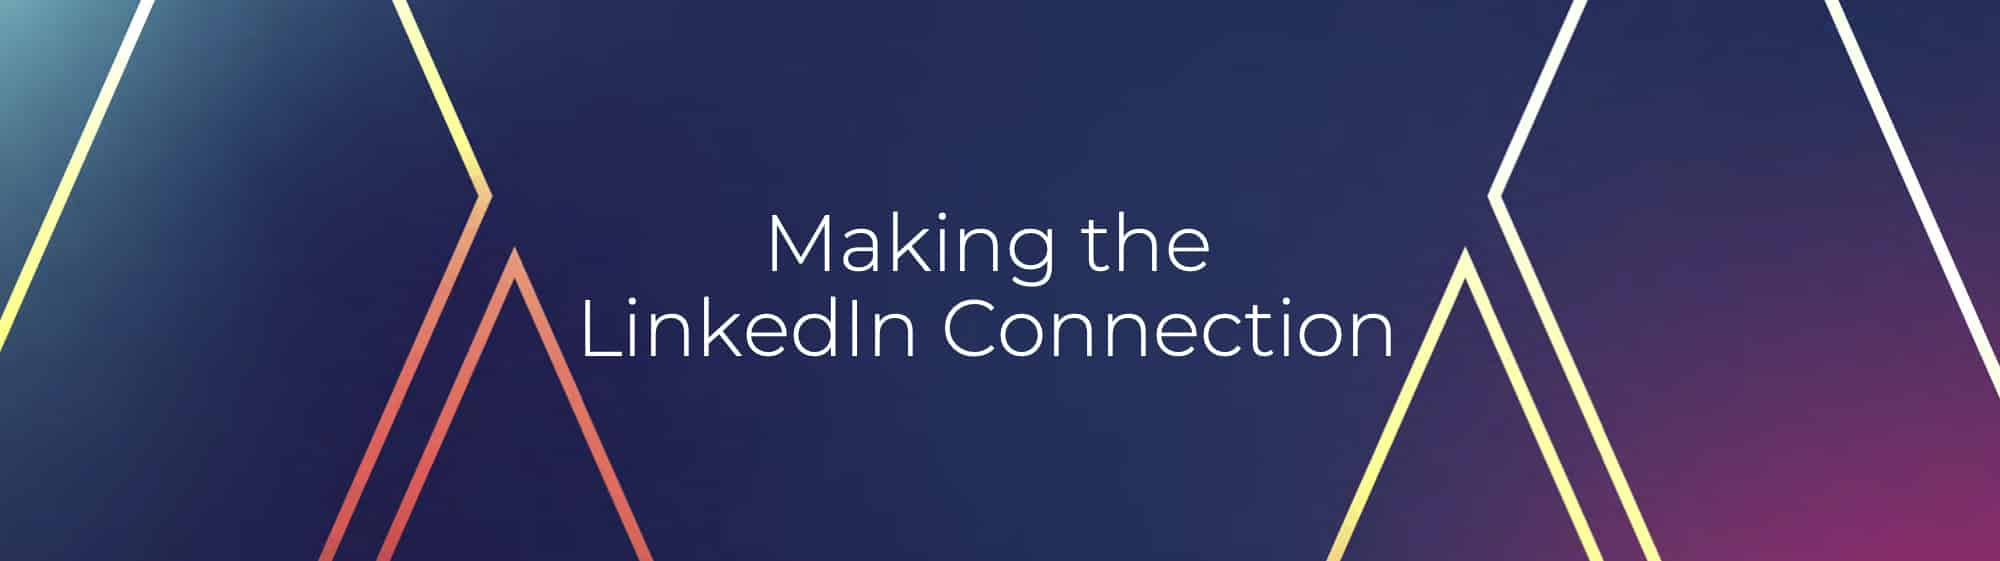 Making the LinkedIn Connection Ebook - The Measured Marketer Popup Banner